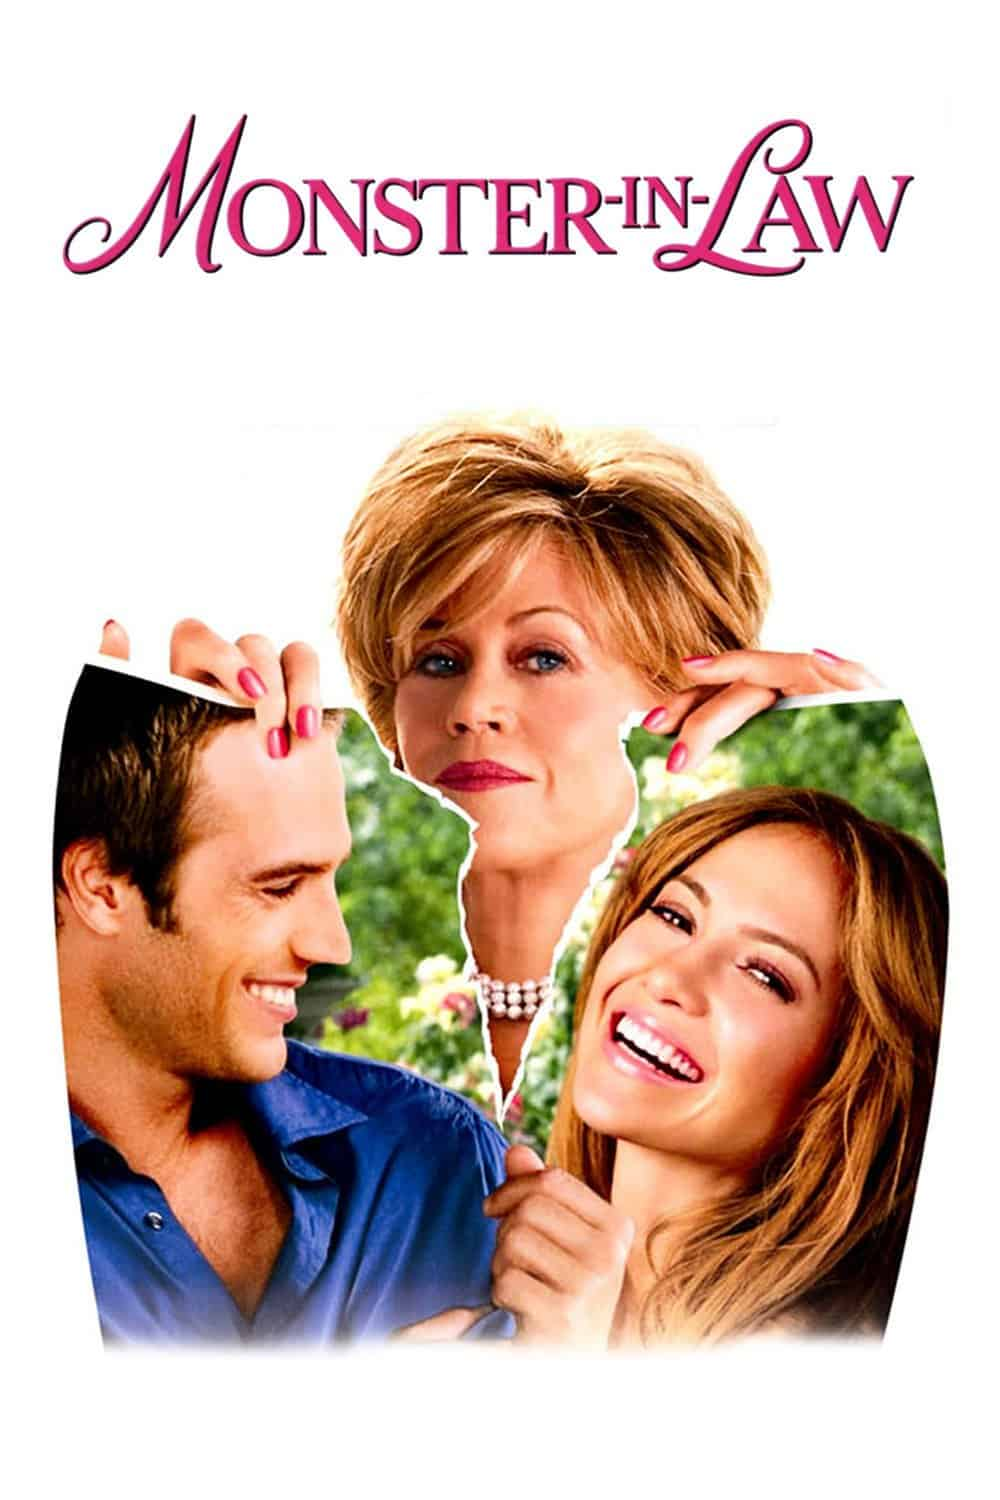 Monster-in-Law, 2005